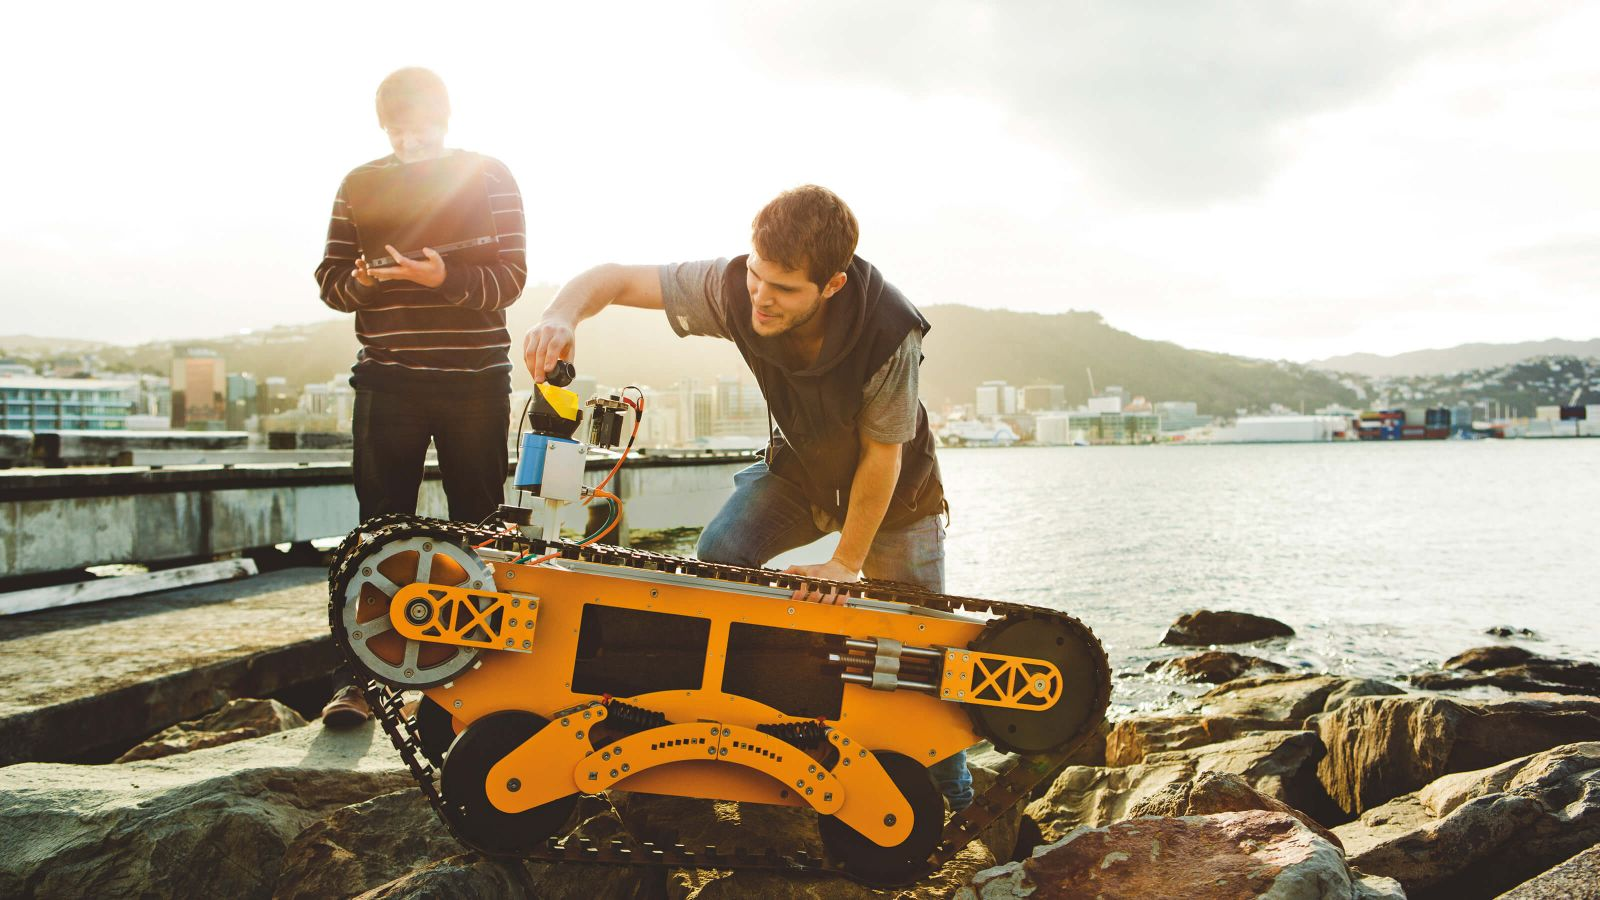 Two students work on an orange remotely operated vehicle that has large tracks – Wellington is in the background.